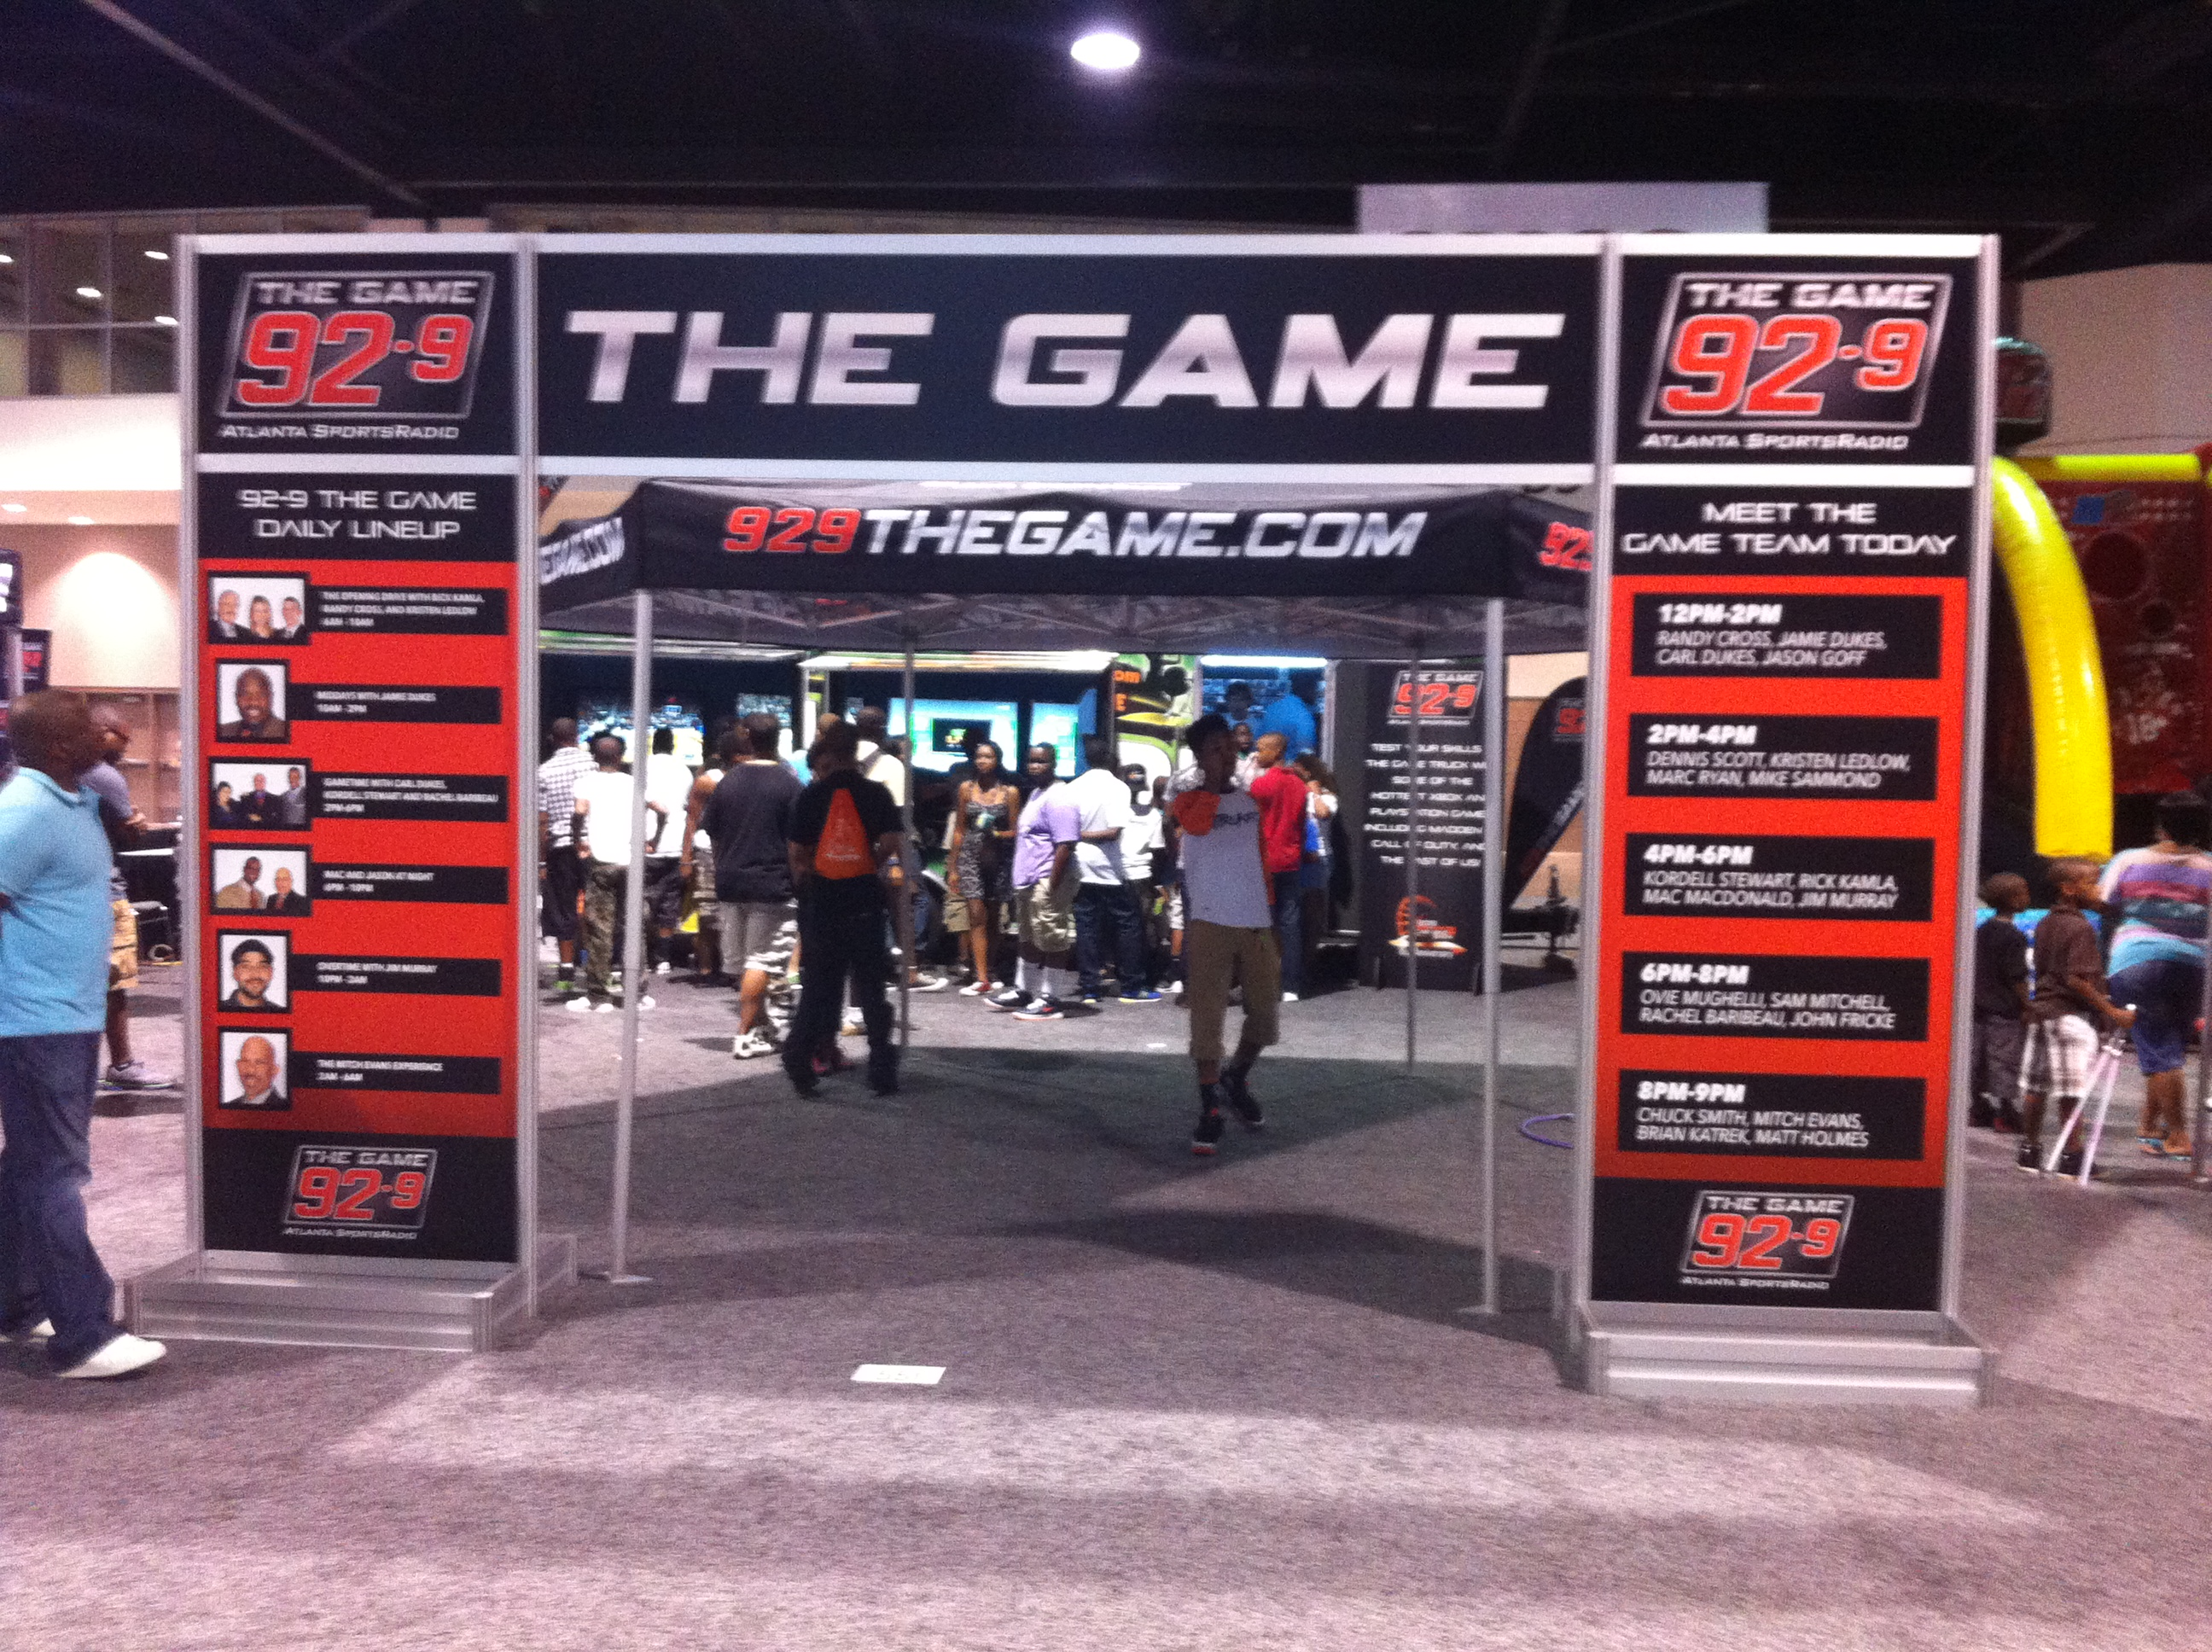 v-103-waok-car-and-bike-show-10th-anniversary-929-thegame-2-freddy-o